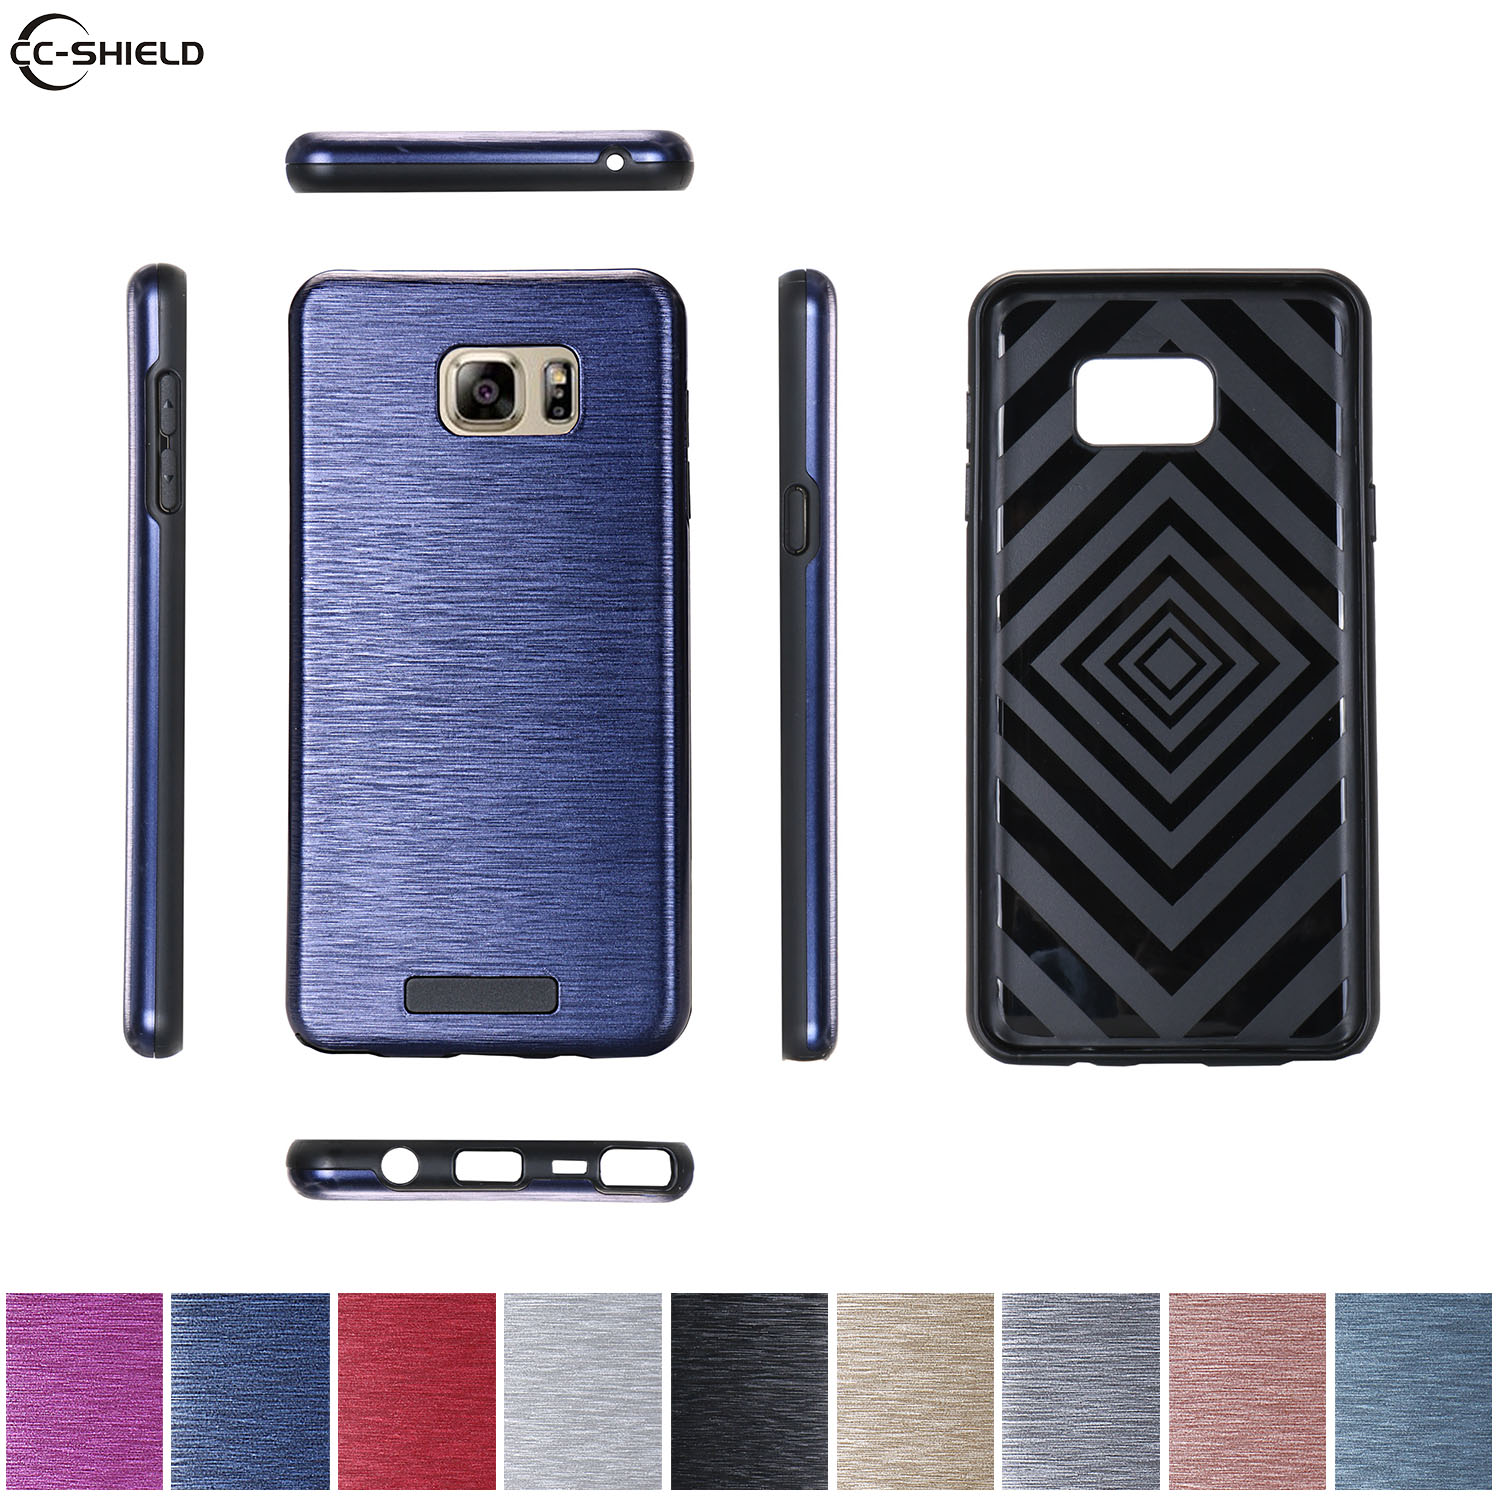 Case for Samsung Galaxy Note 5 Note5 SM N920 SM-N920C N920C SM-N920i N920i SM-N920 SM-N920R4 Phone Bumper Case Silicone Cover